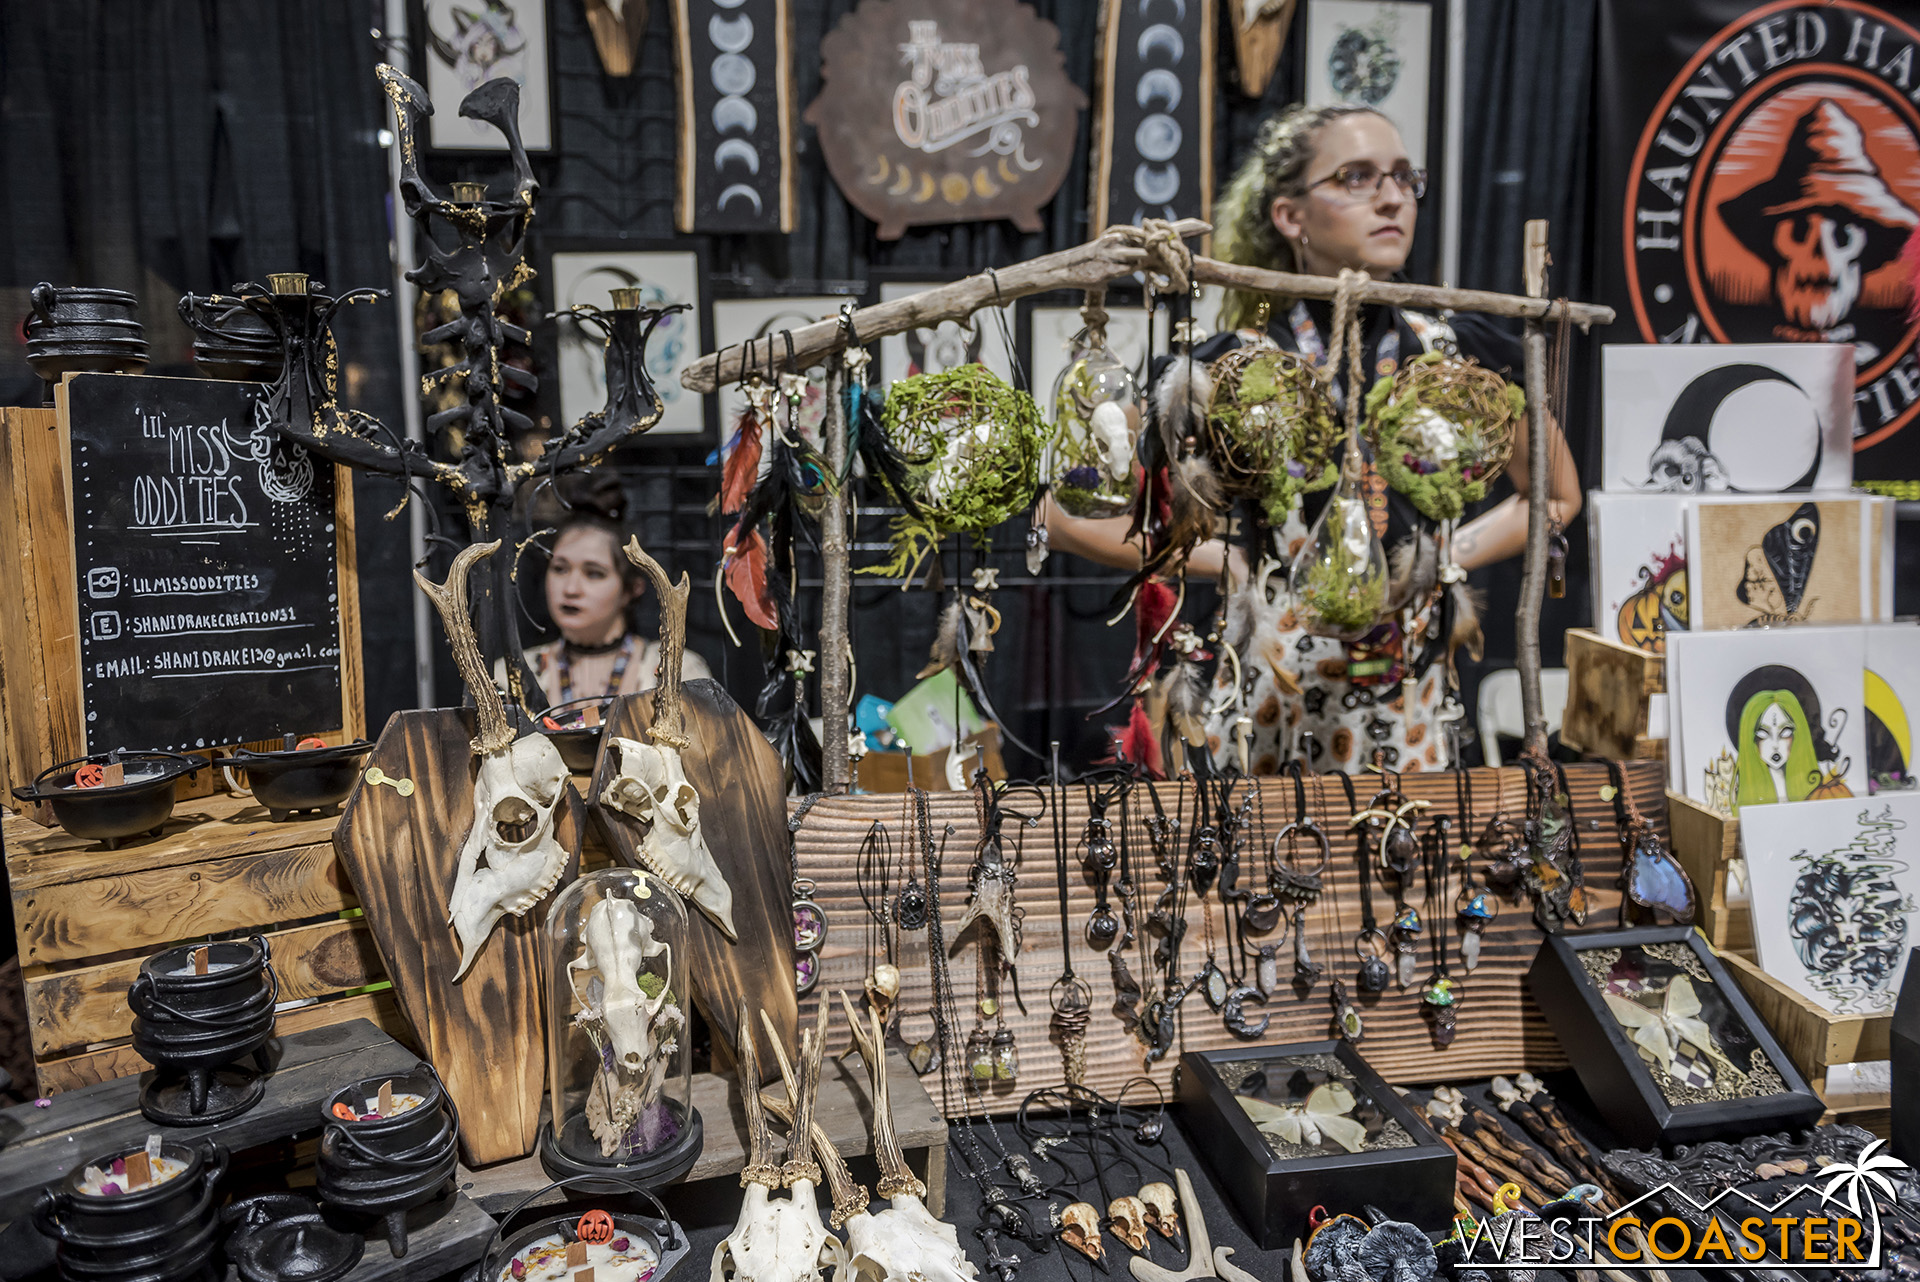 Lil Miss Oddities   is one of many homemade gothic craft merchants making some really creative and cool pieces of jewelry, home furnishings, and art pieces.